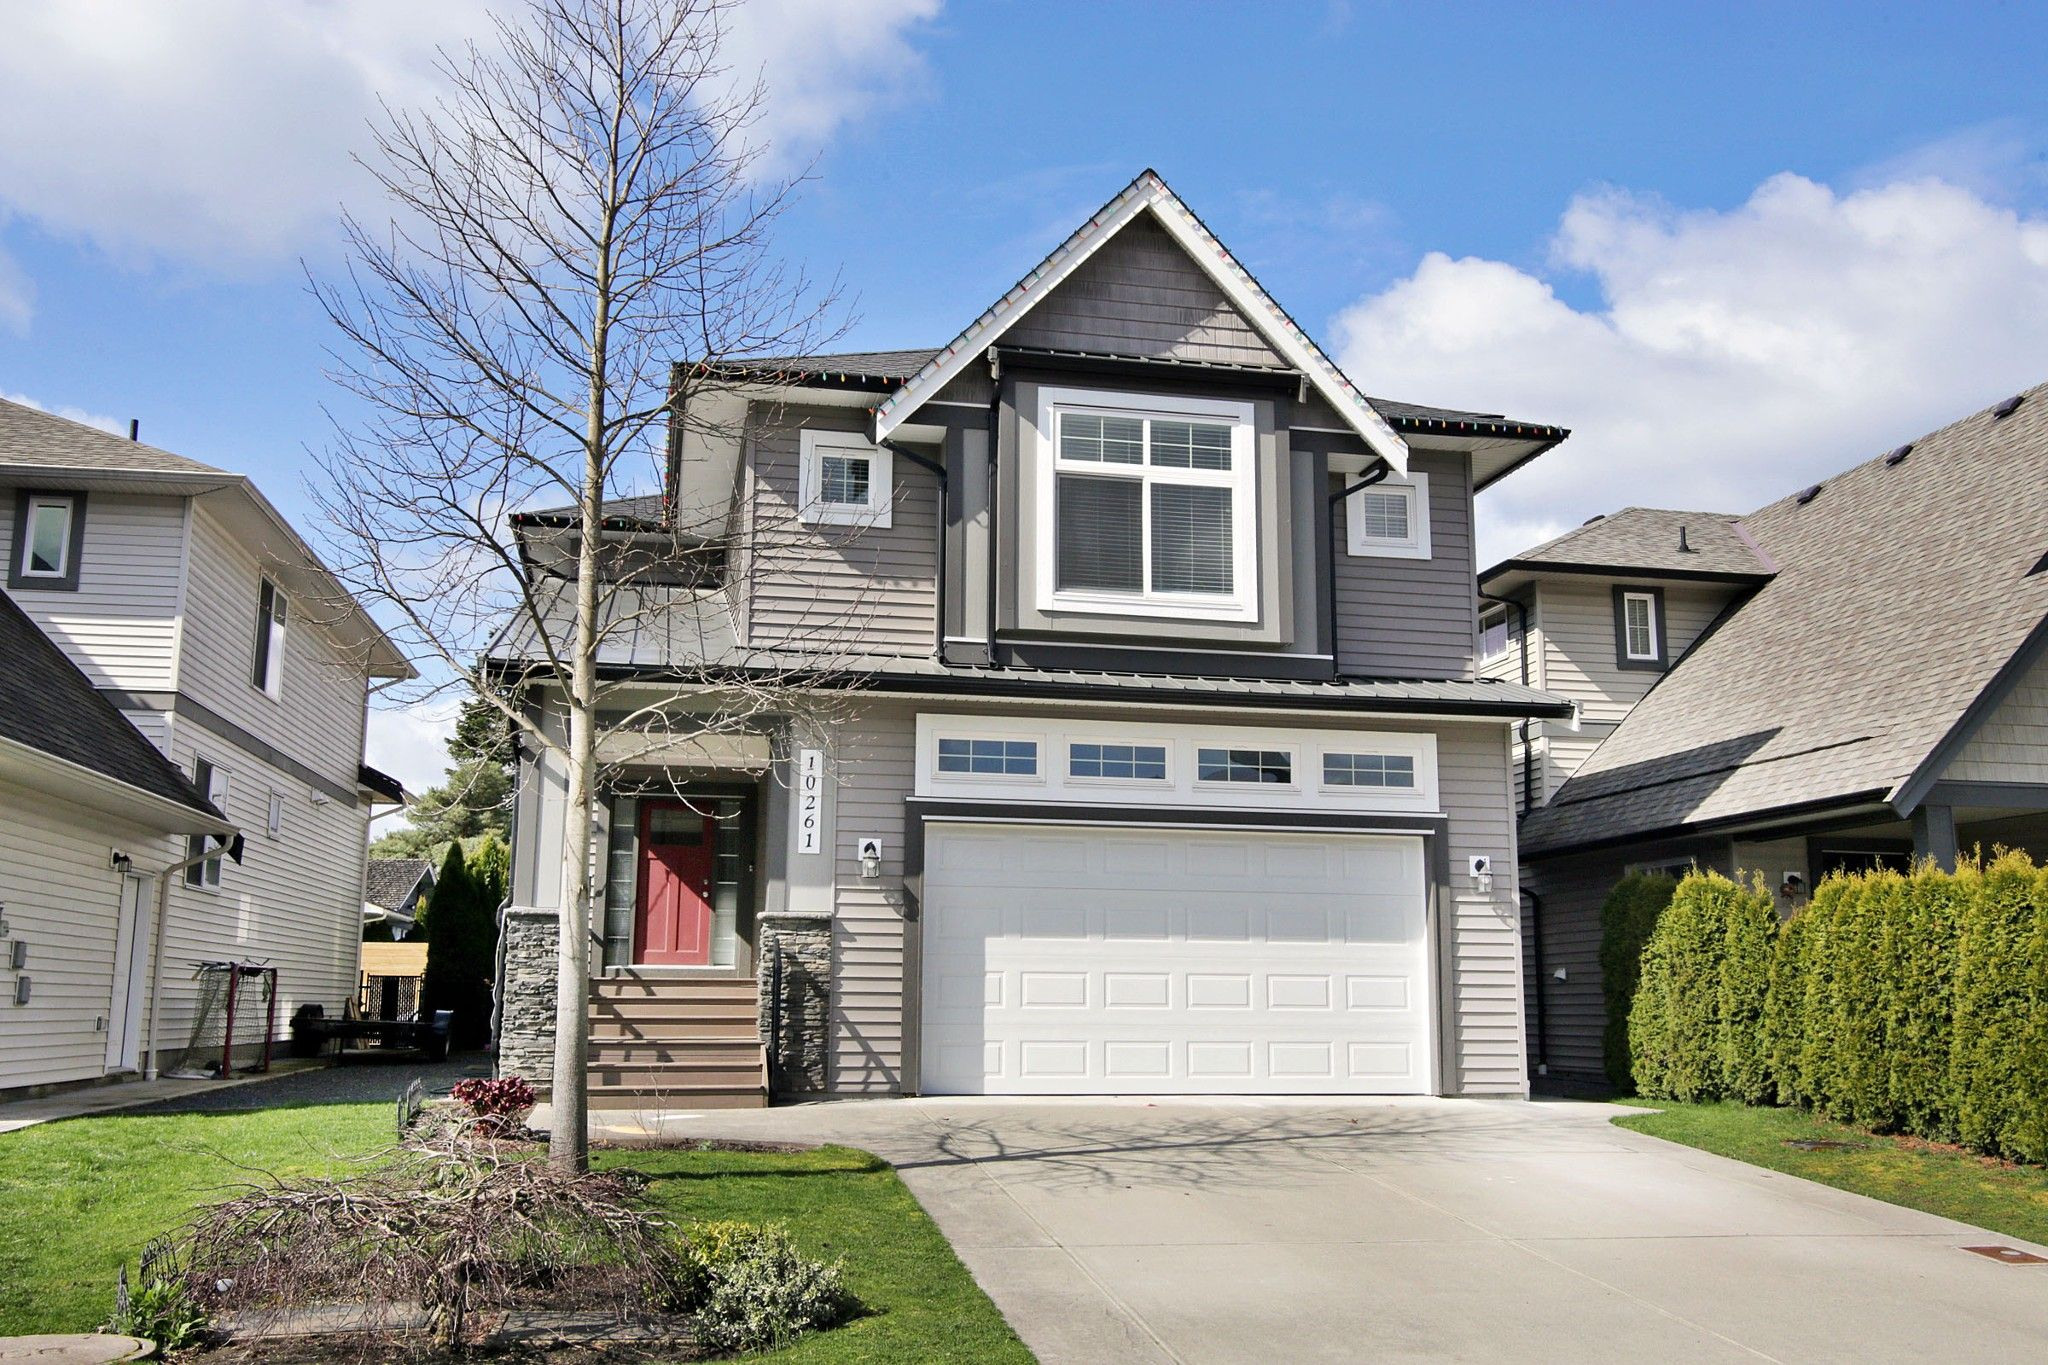 """Main Photo: 10261 MANOR Drive in Chilliwack: Fairfield Island House for sale in """"Fairfield Island"""" : MLS®# R2568147"""